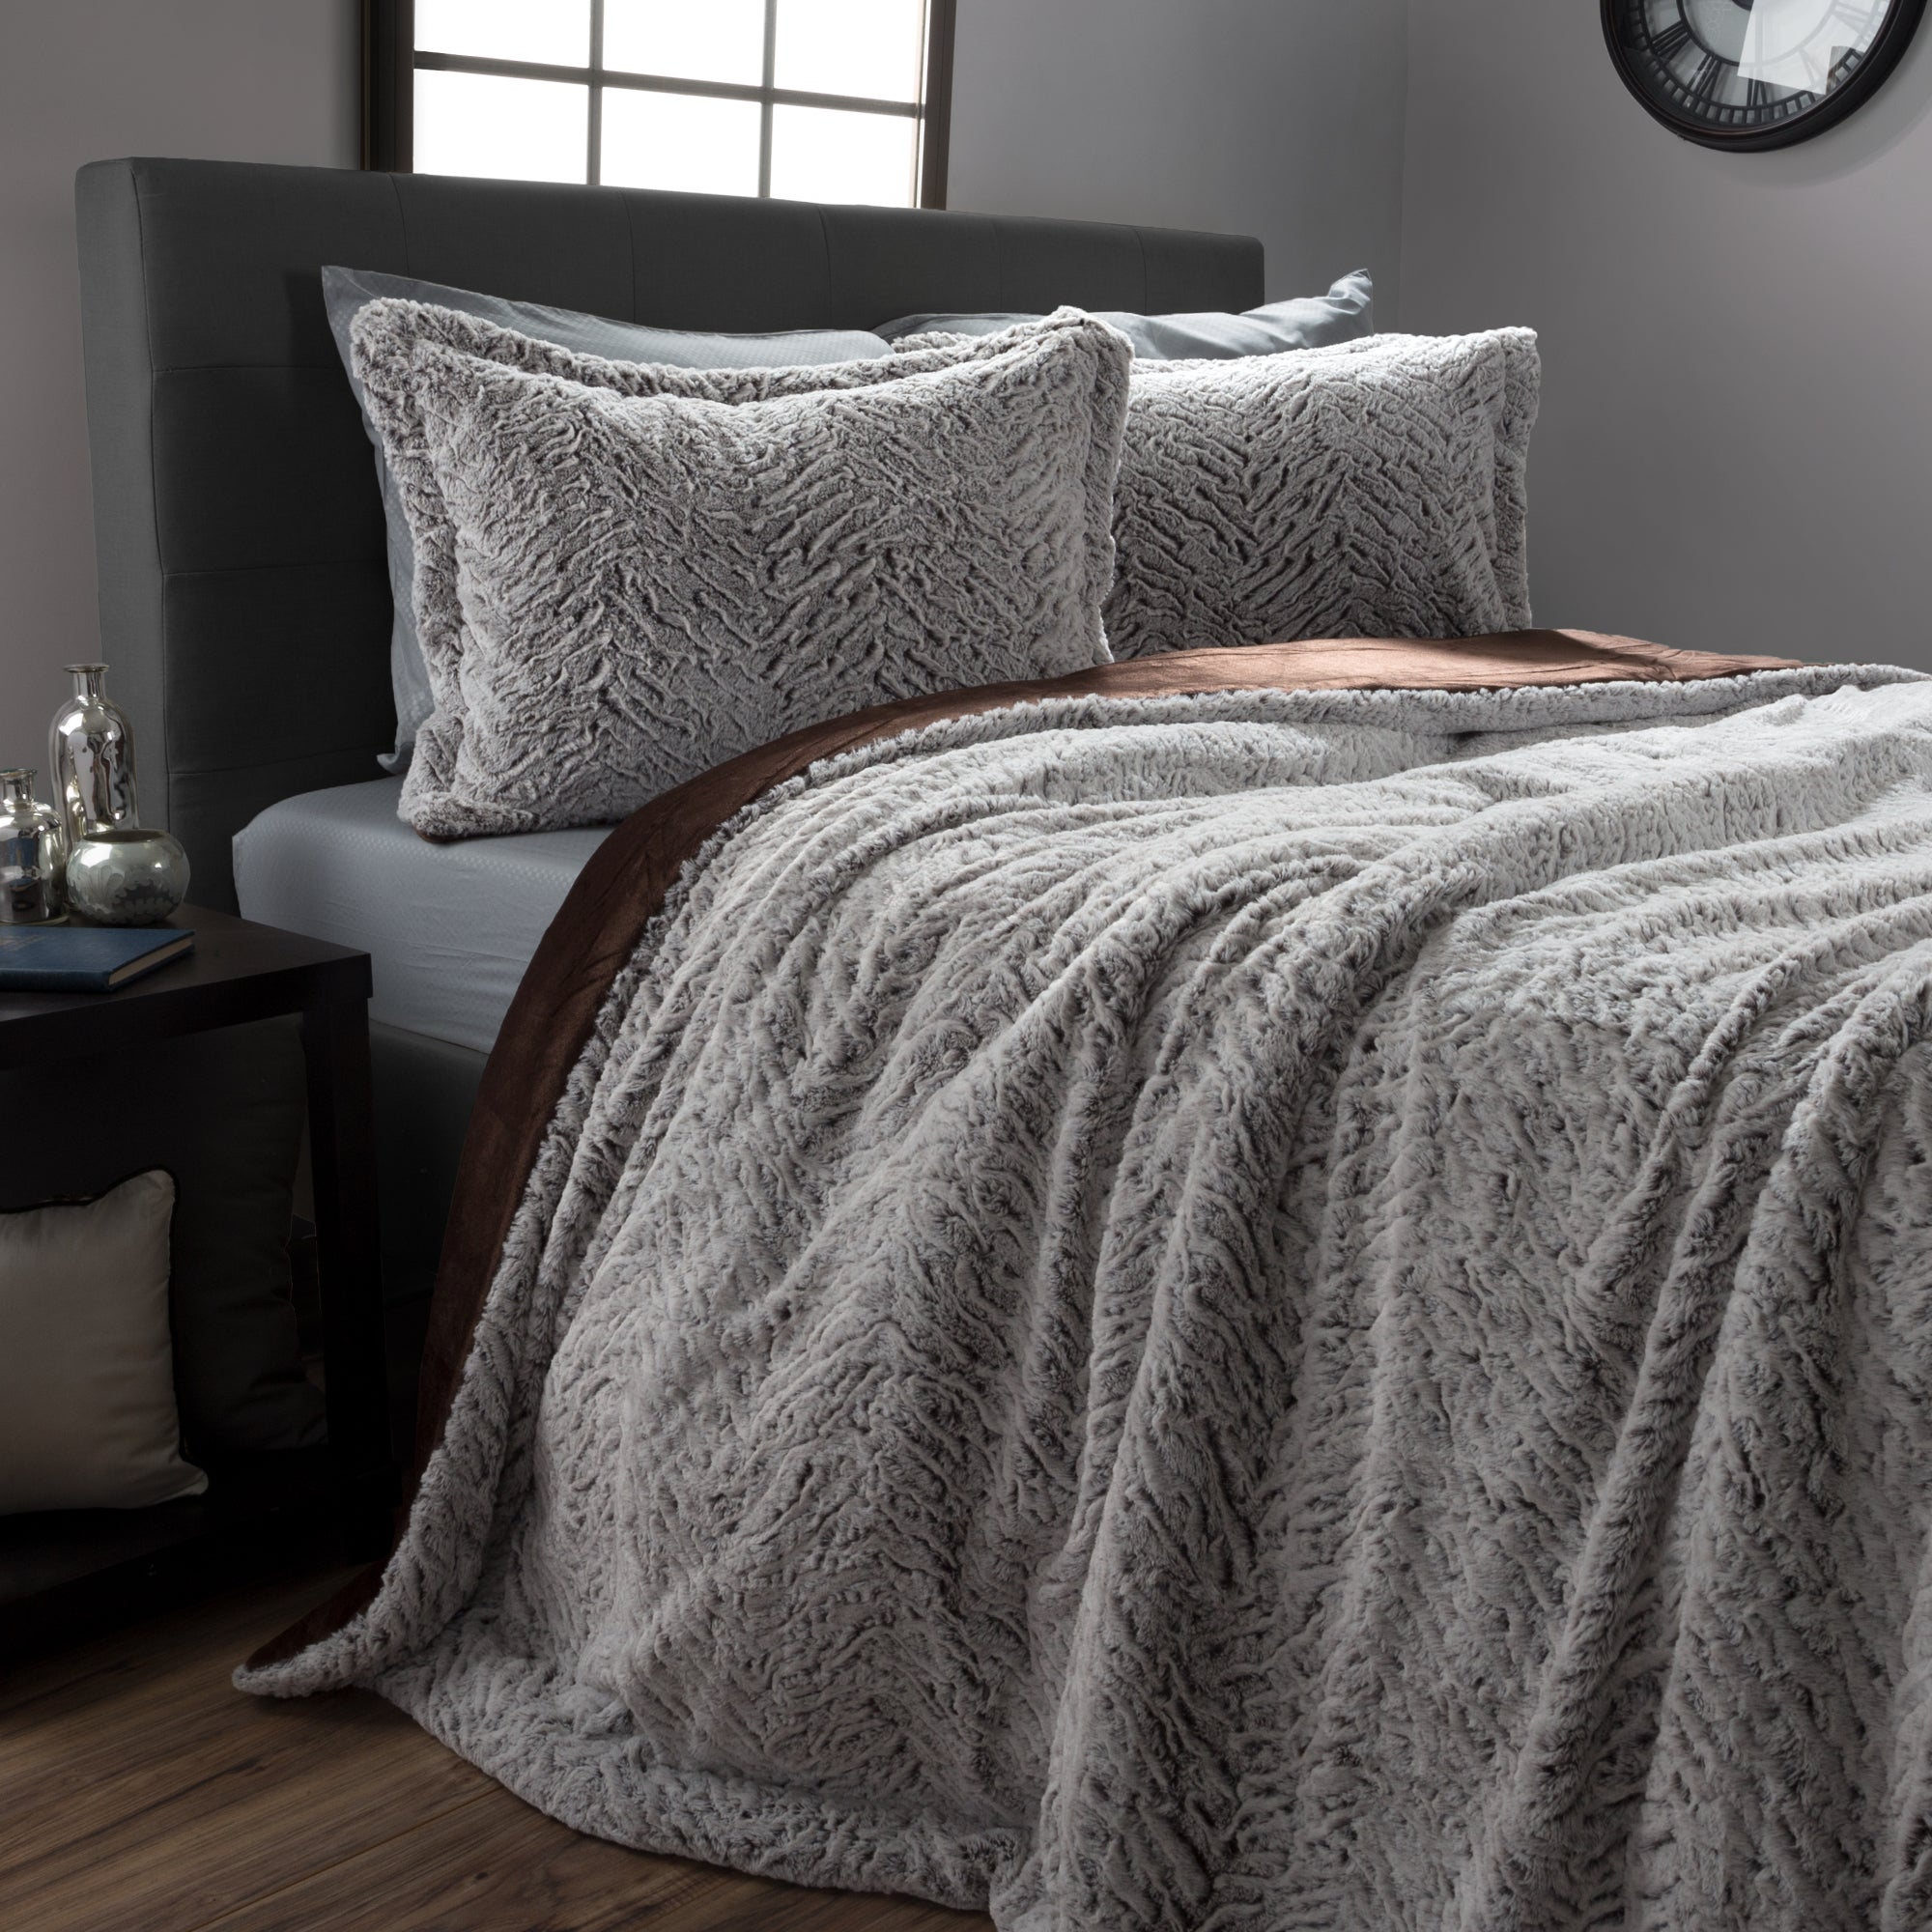 Mink Faux Fur 3 Piece Comforter and Sham Set By Windsor H...